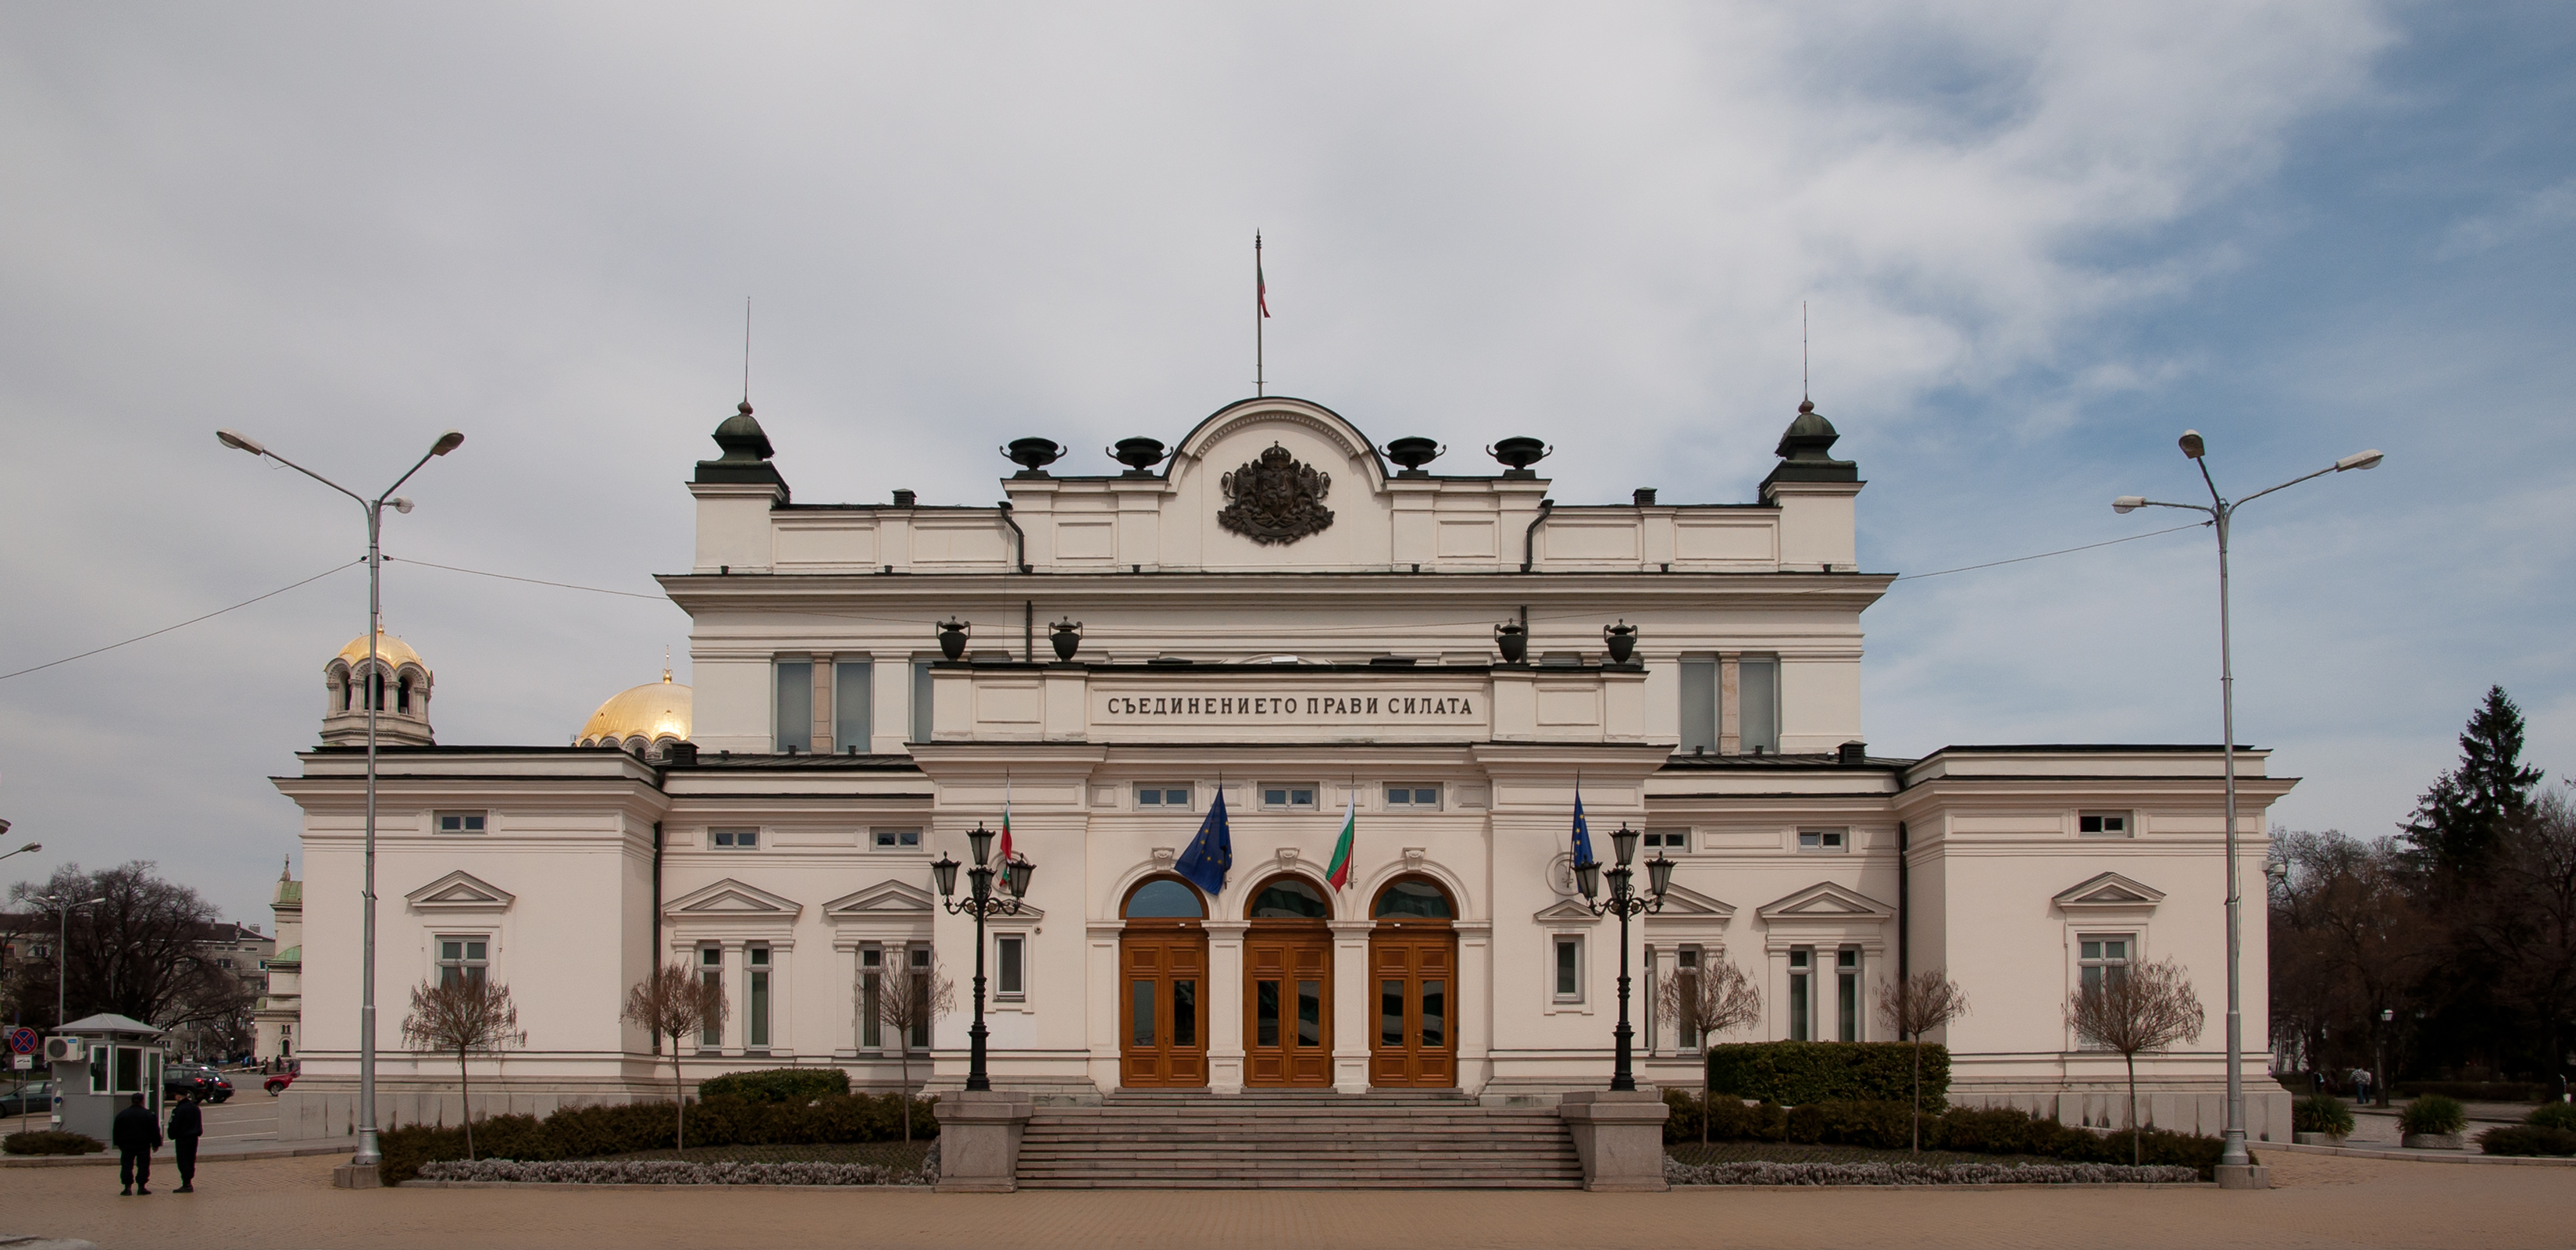 The National Assembly building in Sofia